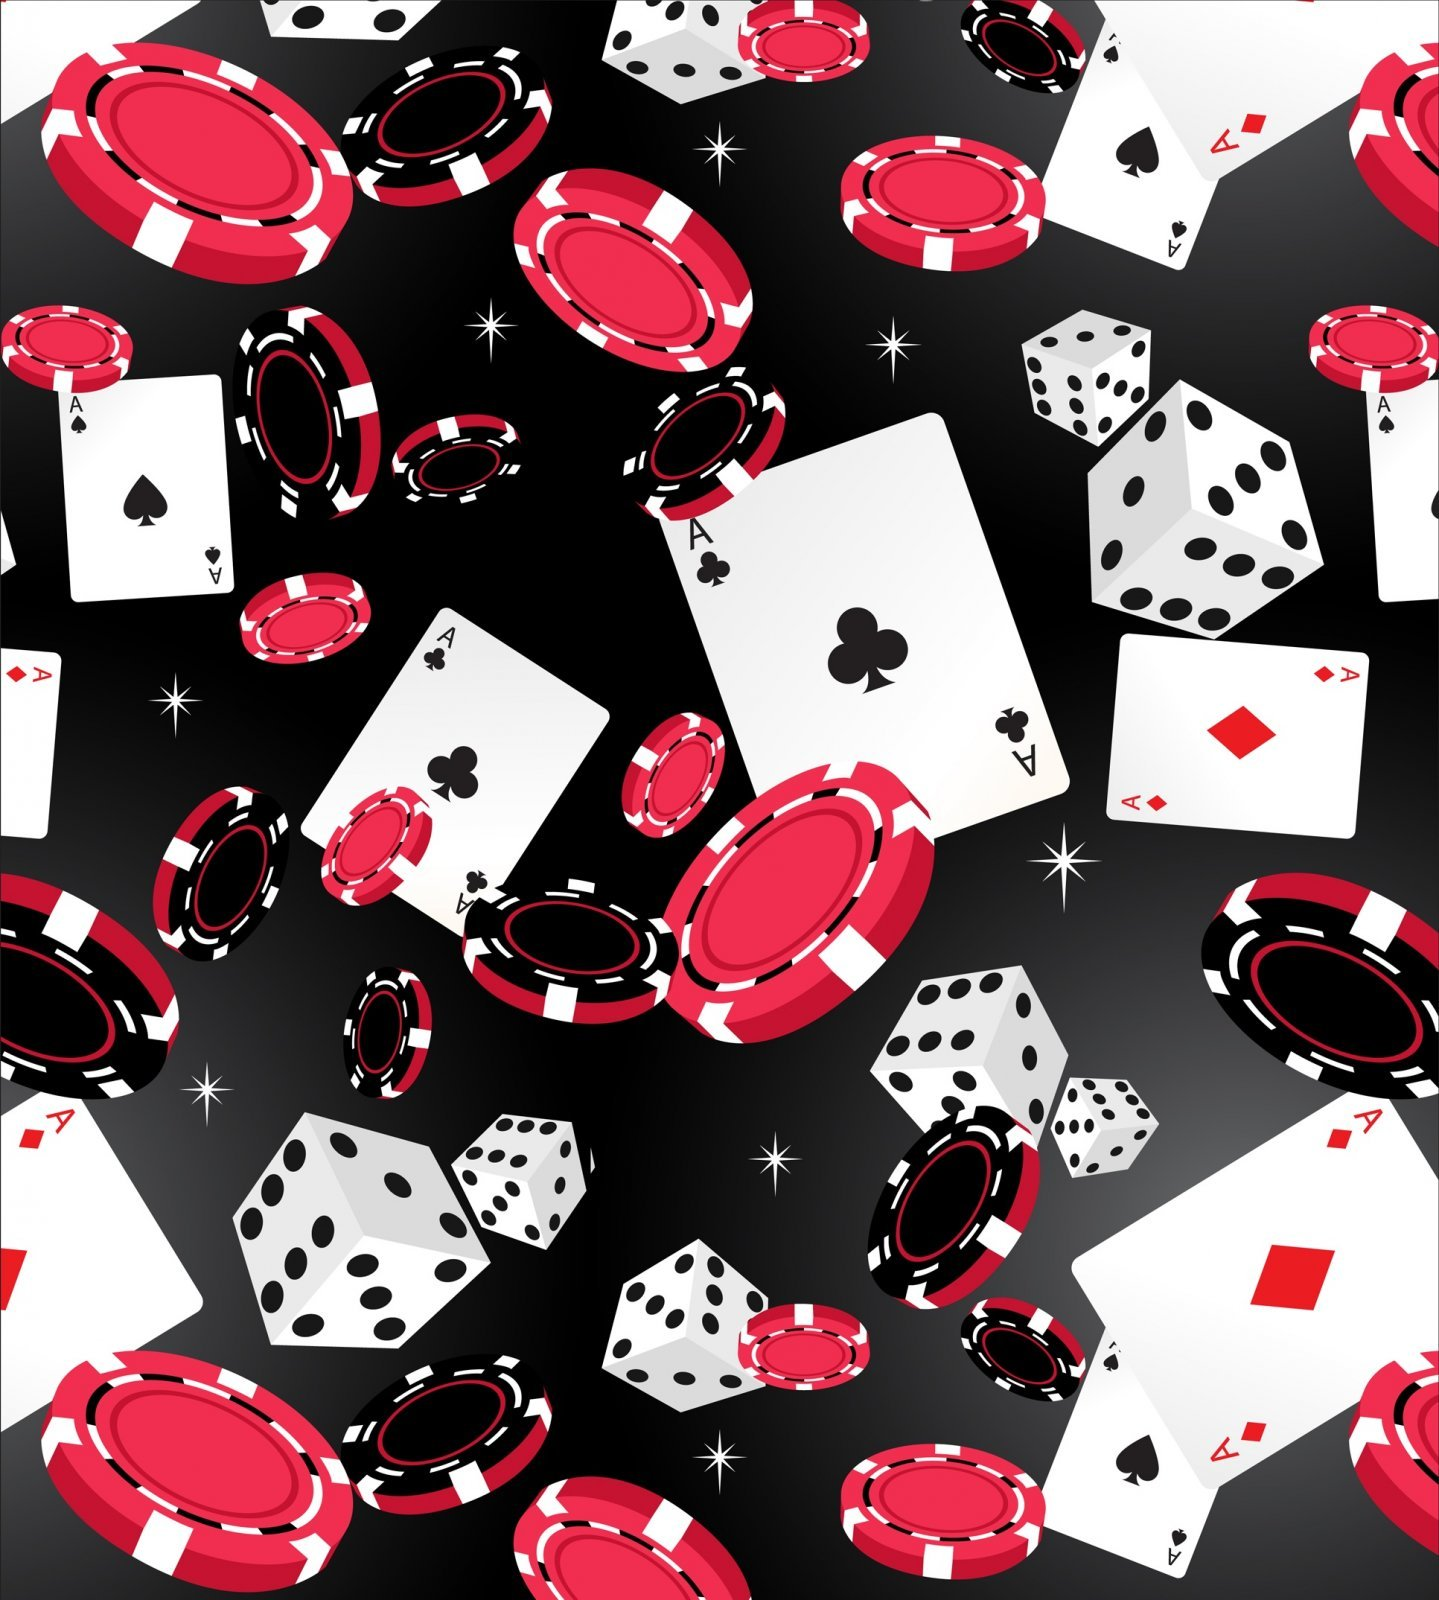 Casino 2530-1 Black Dice Chips Cards